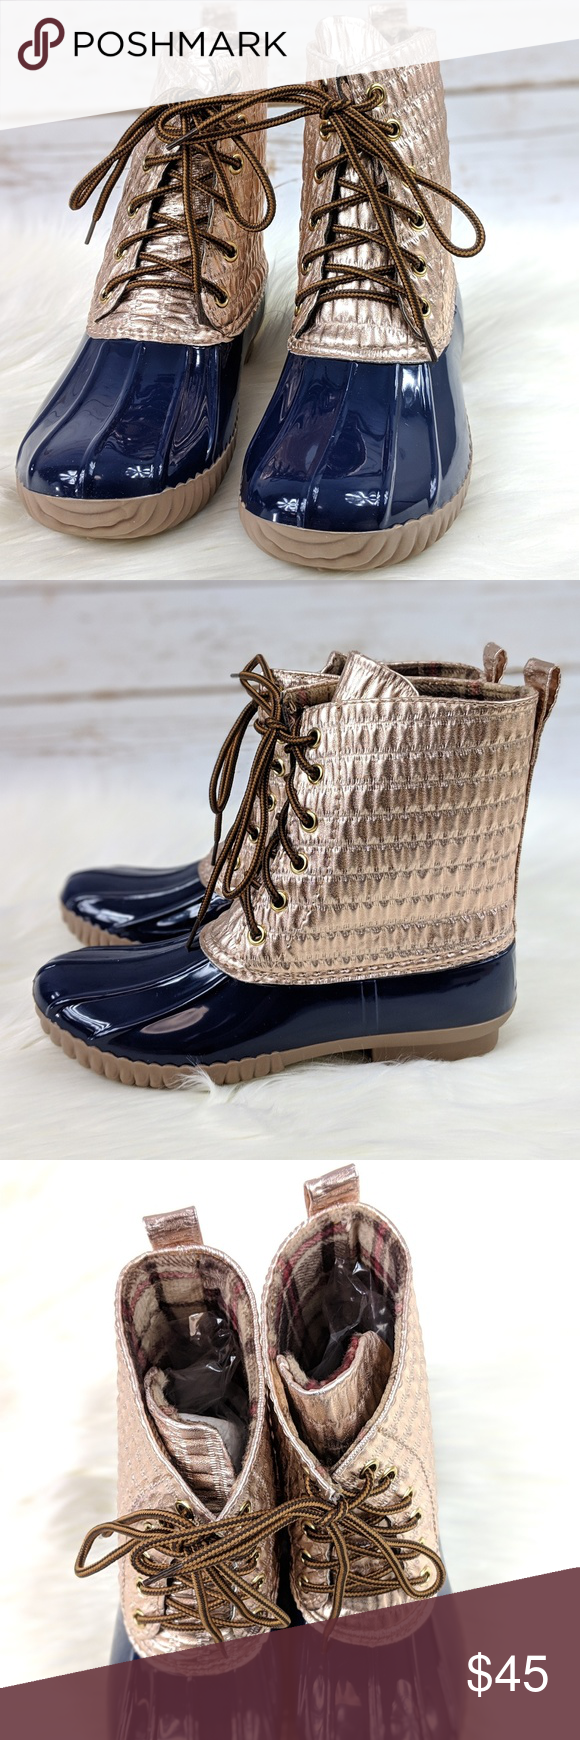 43c8973c6f57 Yoki Pleated Rose Gold Metallic Duck Boots  New Boutique Item  When the  weather is bad